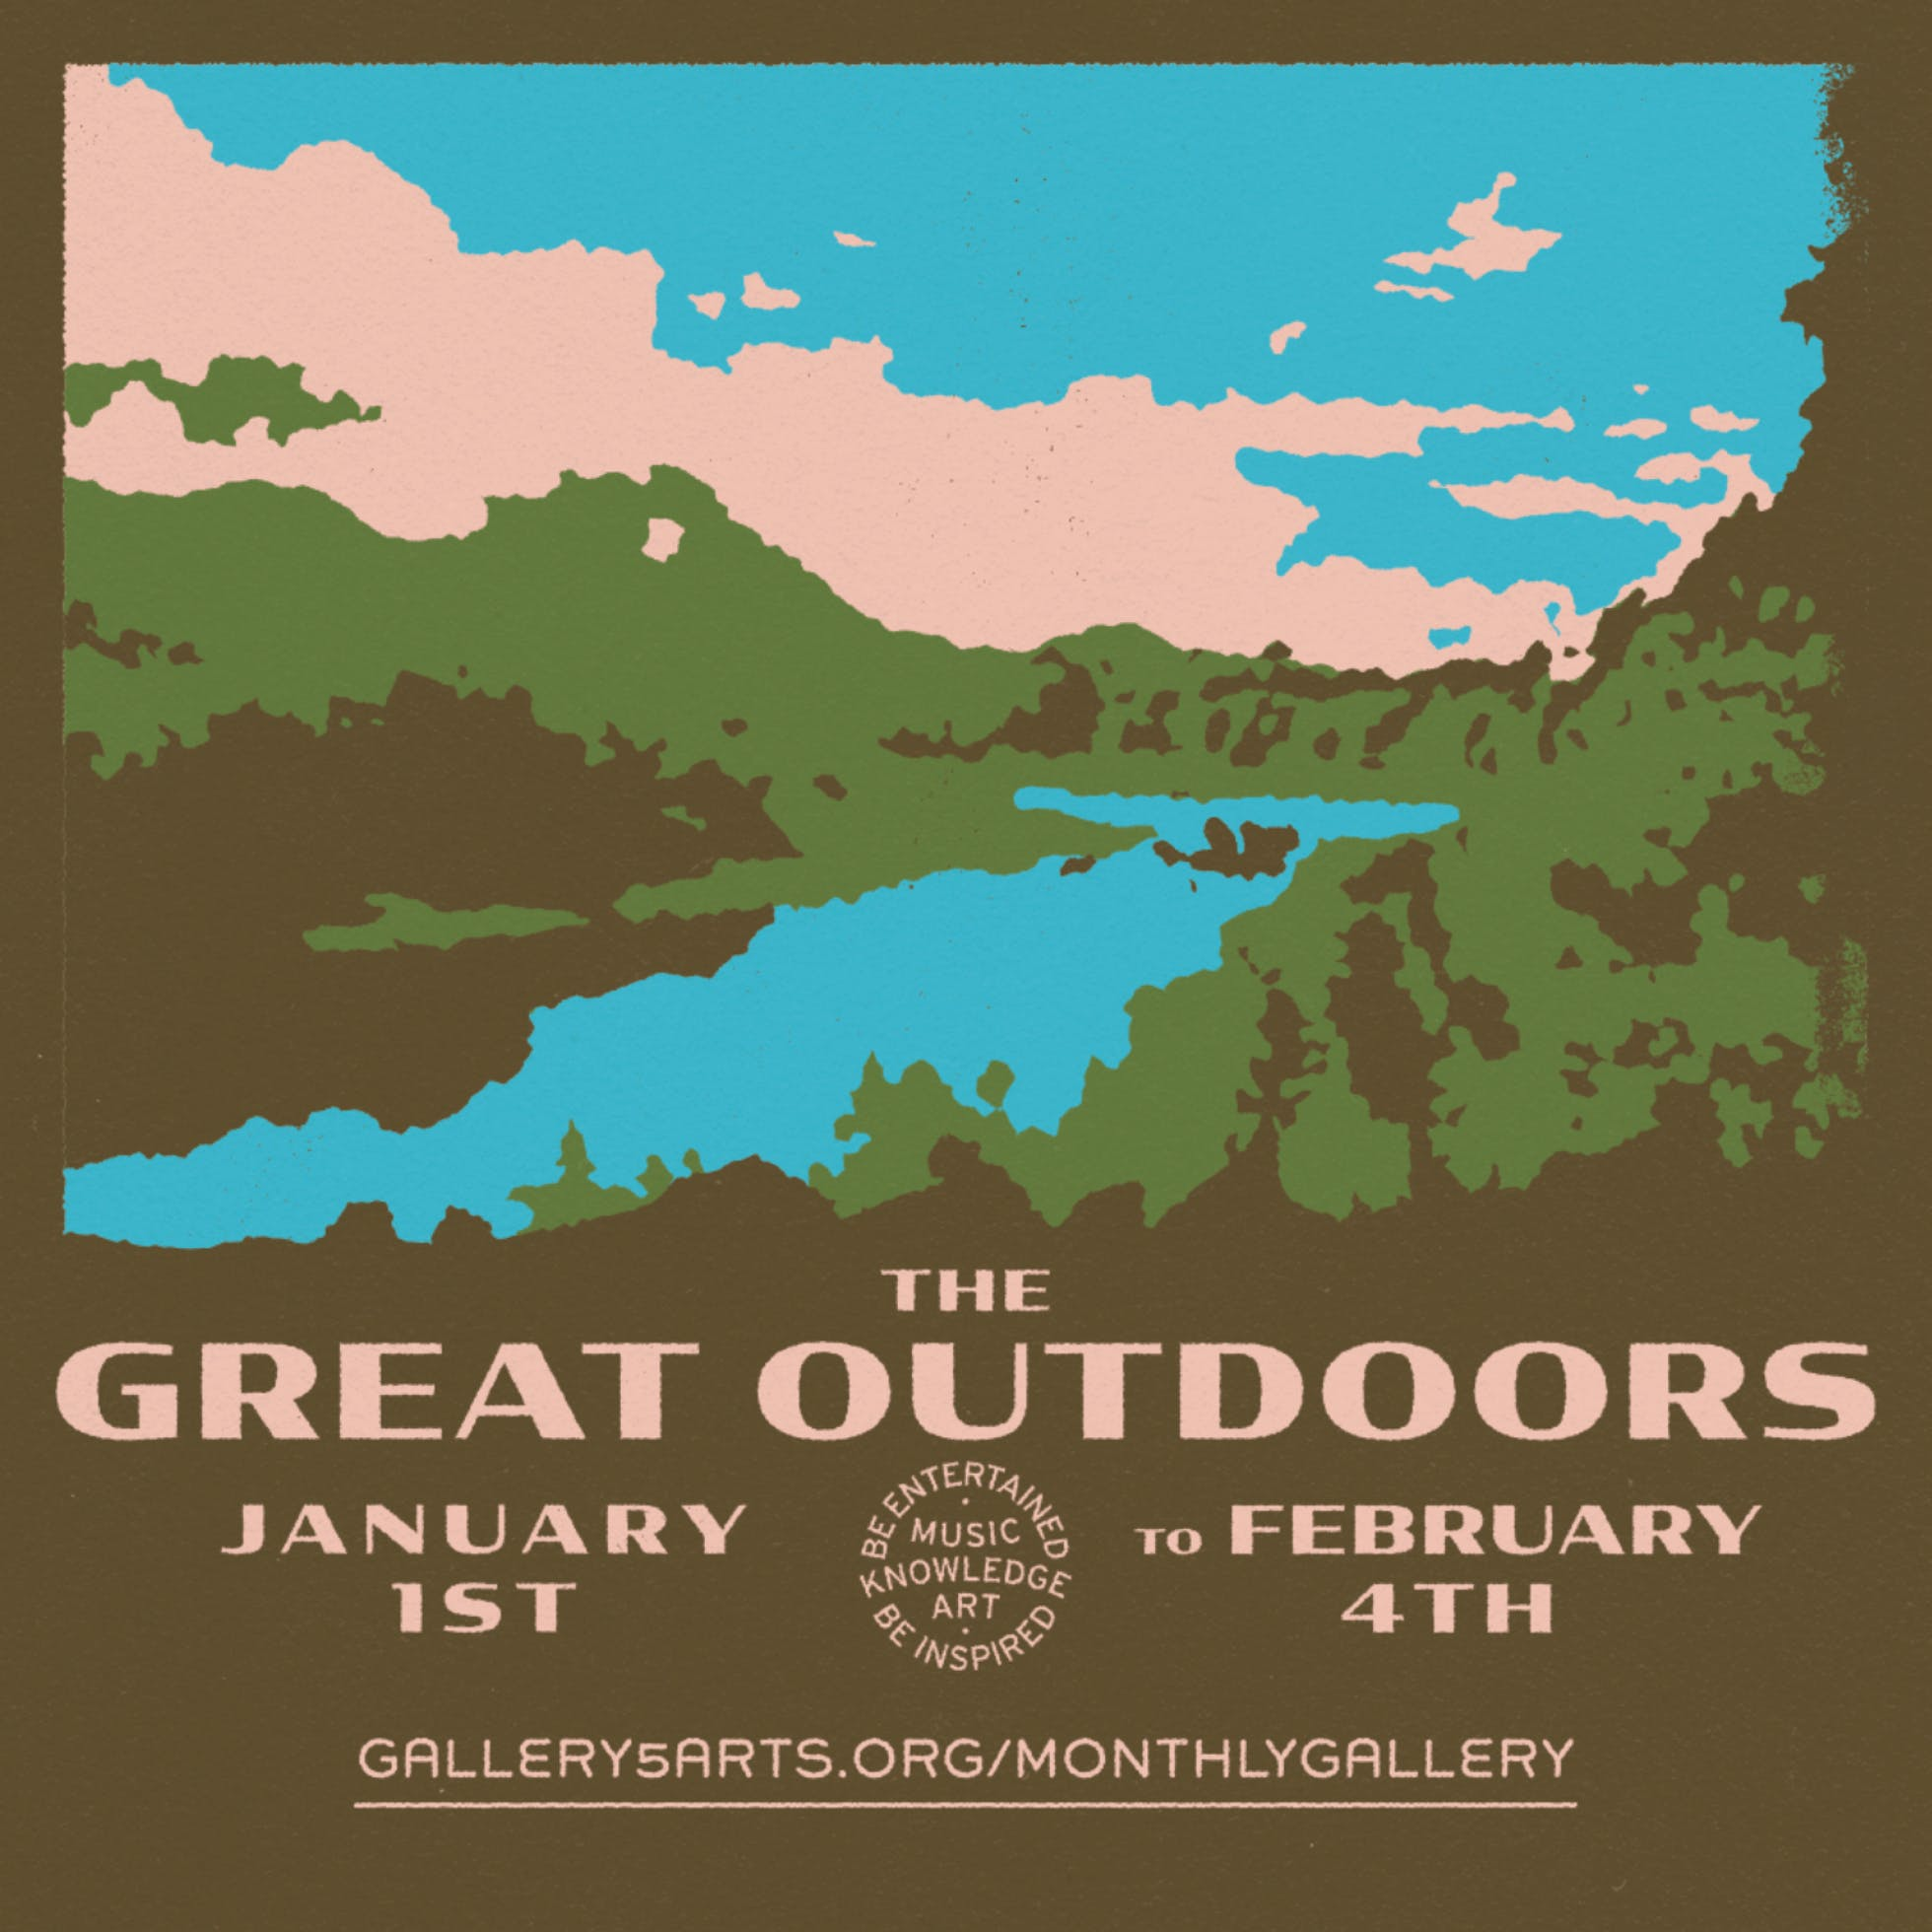 Gallery 5's Virtual Monthly Gallery: The Great Outdoors